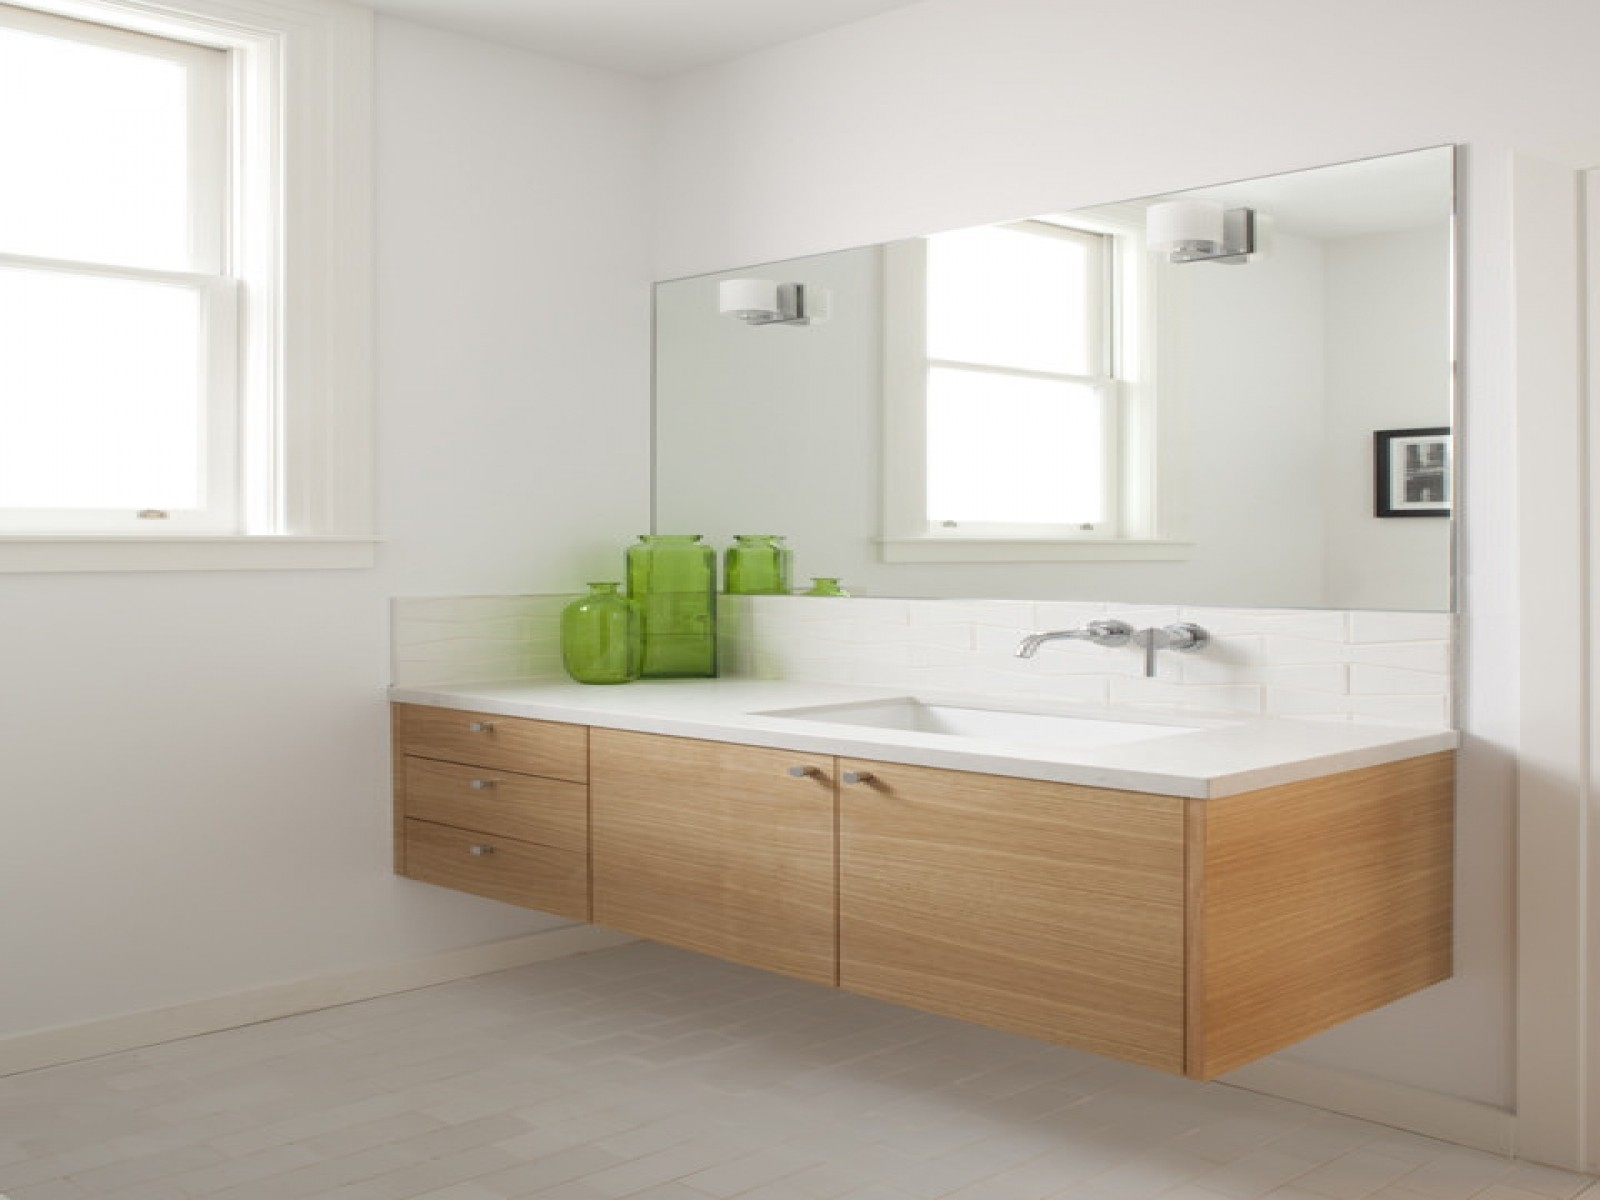 Picture of: Floating Bathroom Vanity Contemporary